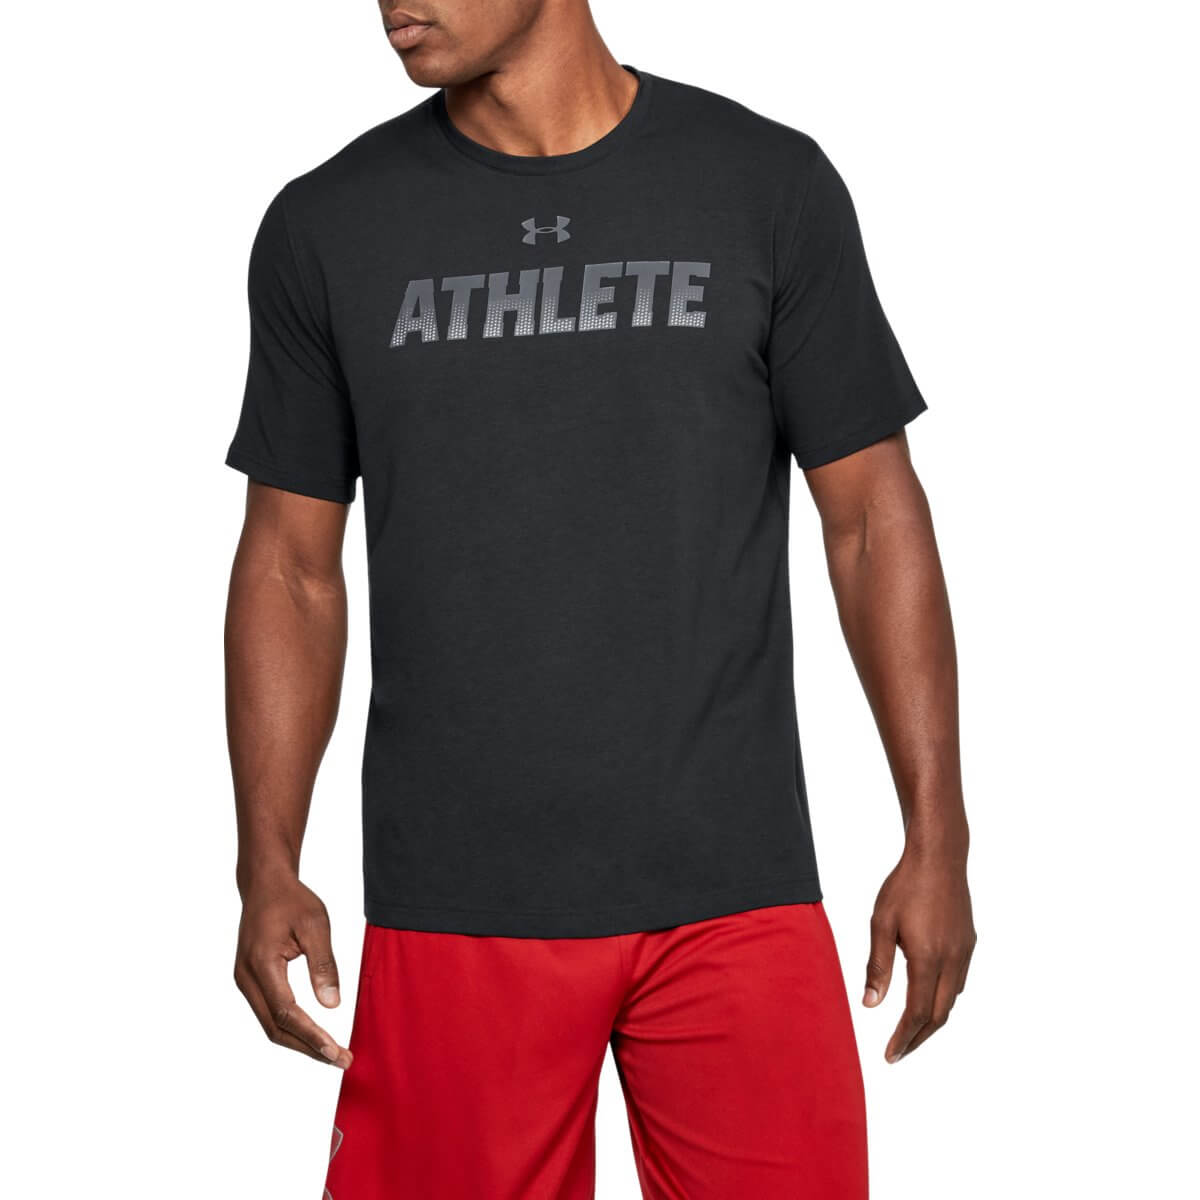 Under Armour Tričko Athlete SS Black S